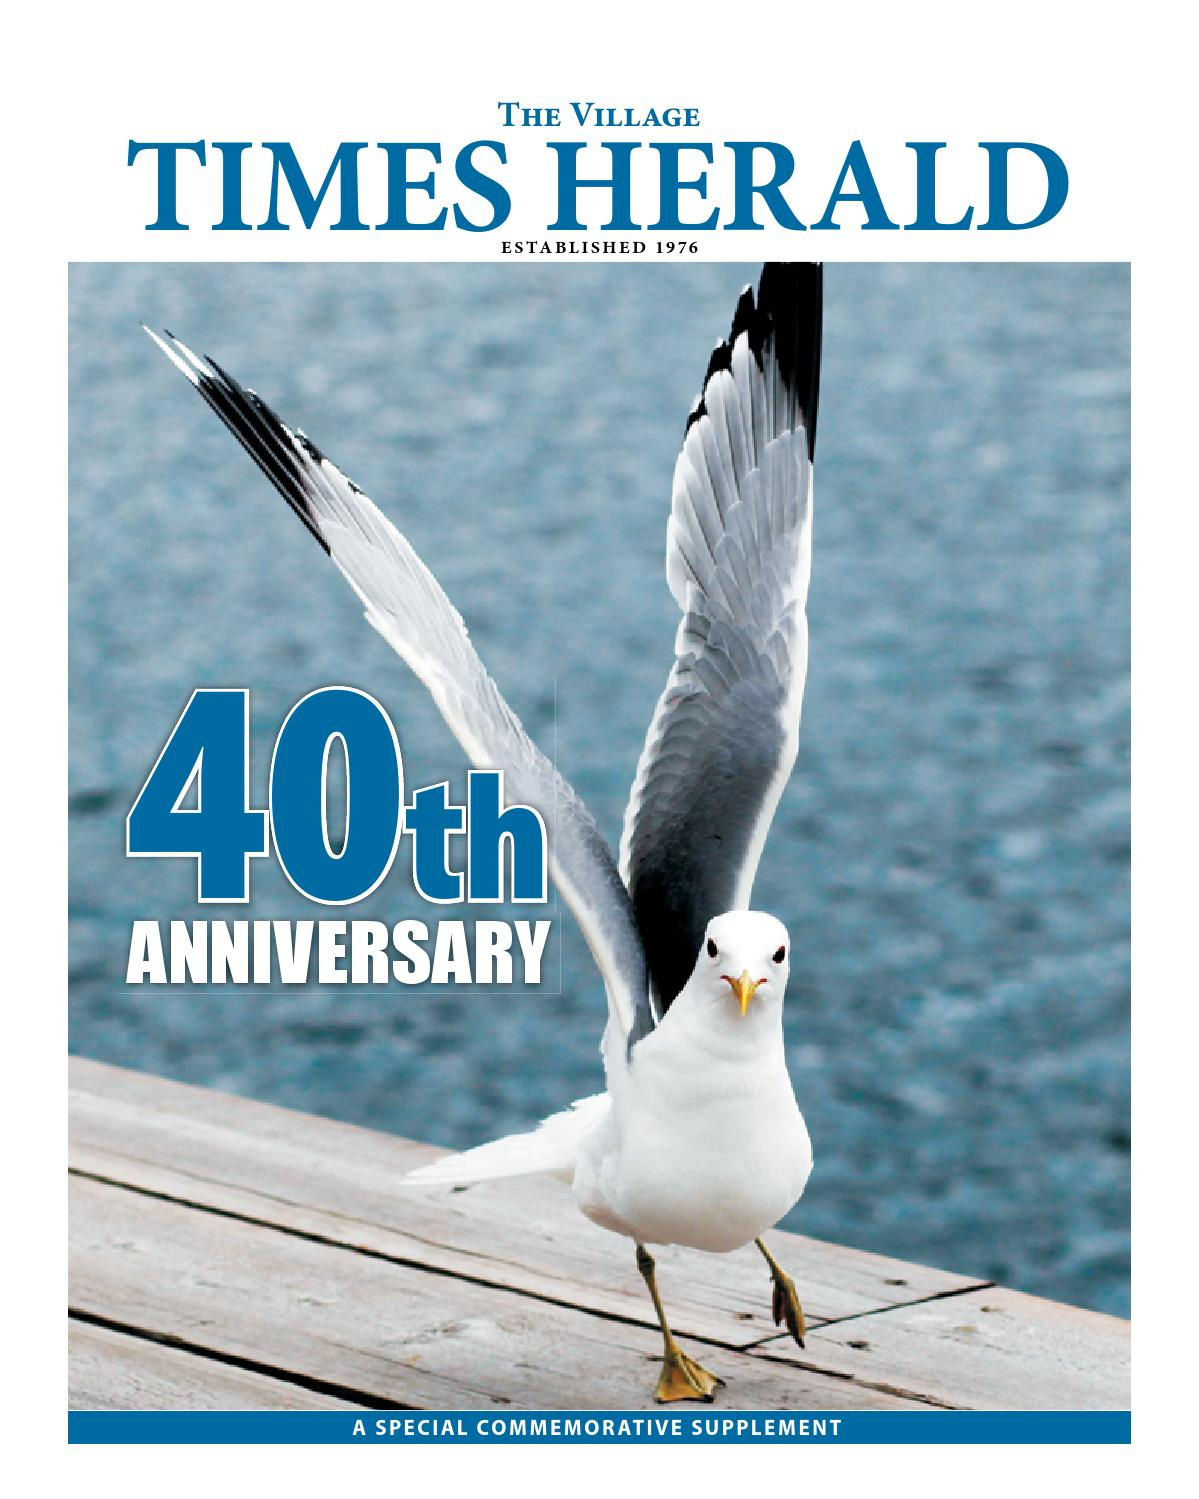 Animal Crossing Porn Villagers the village times herald 40th anniversarytbr news media